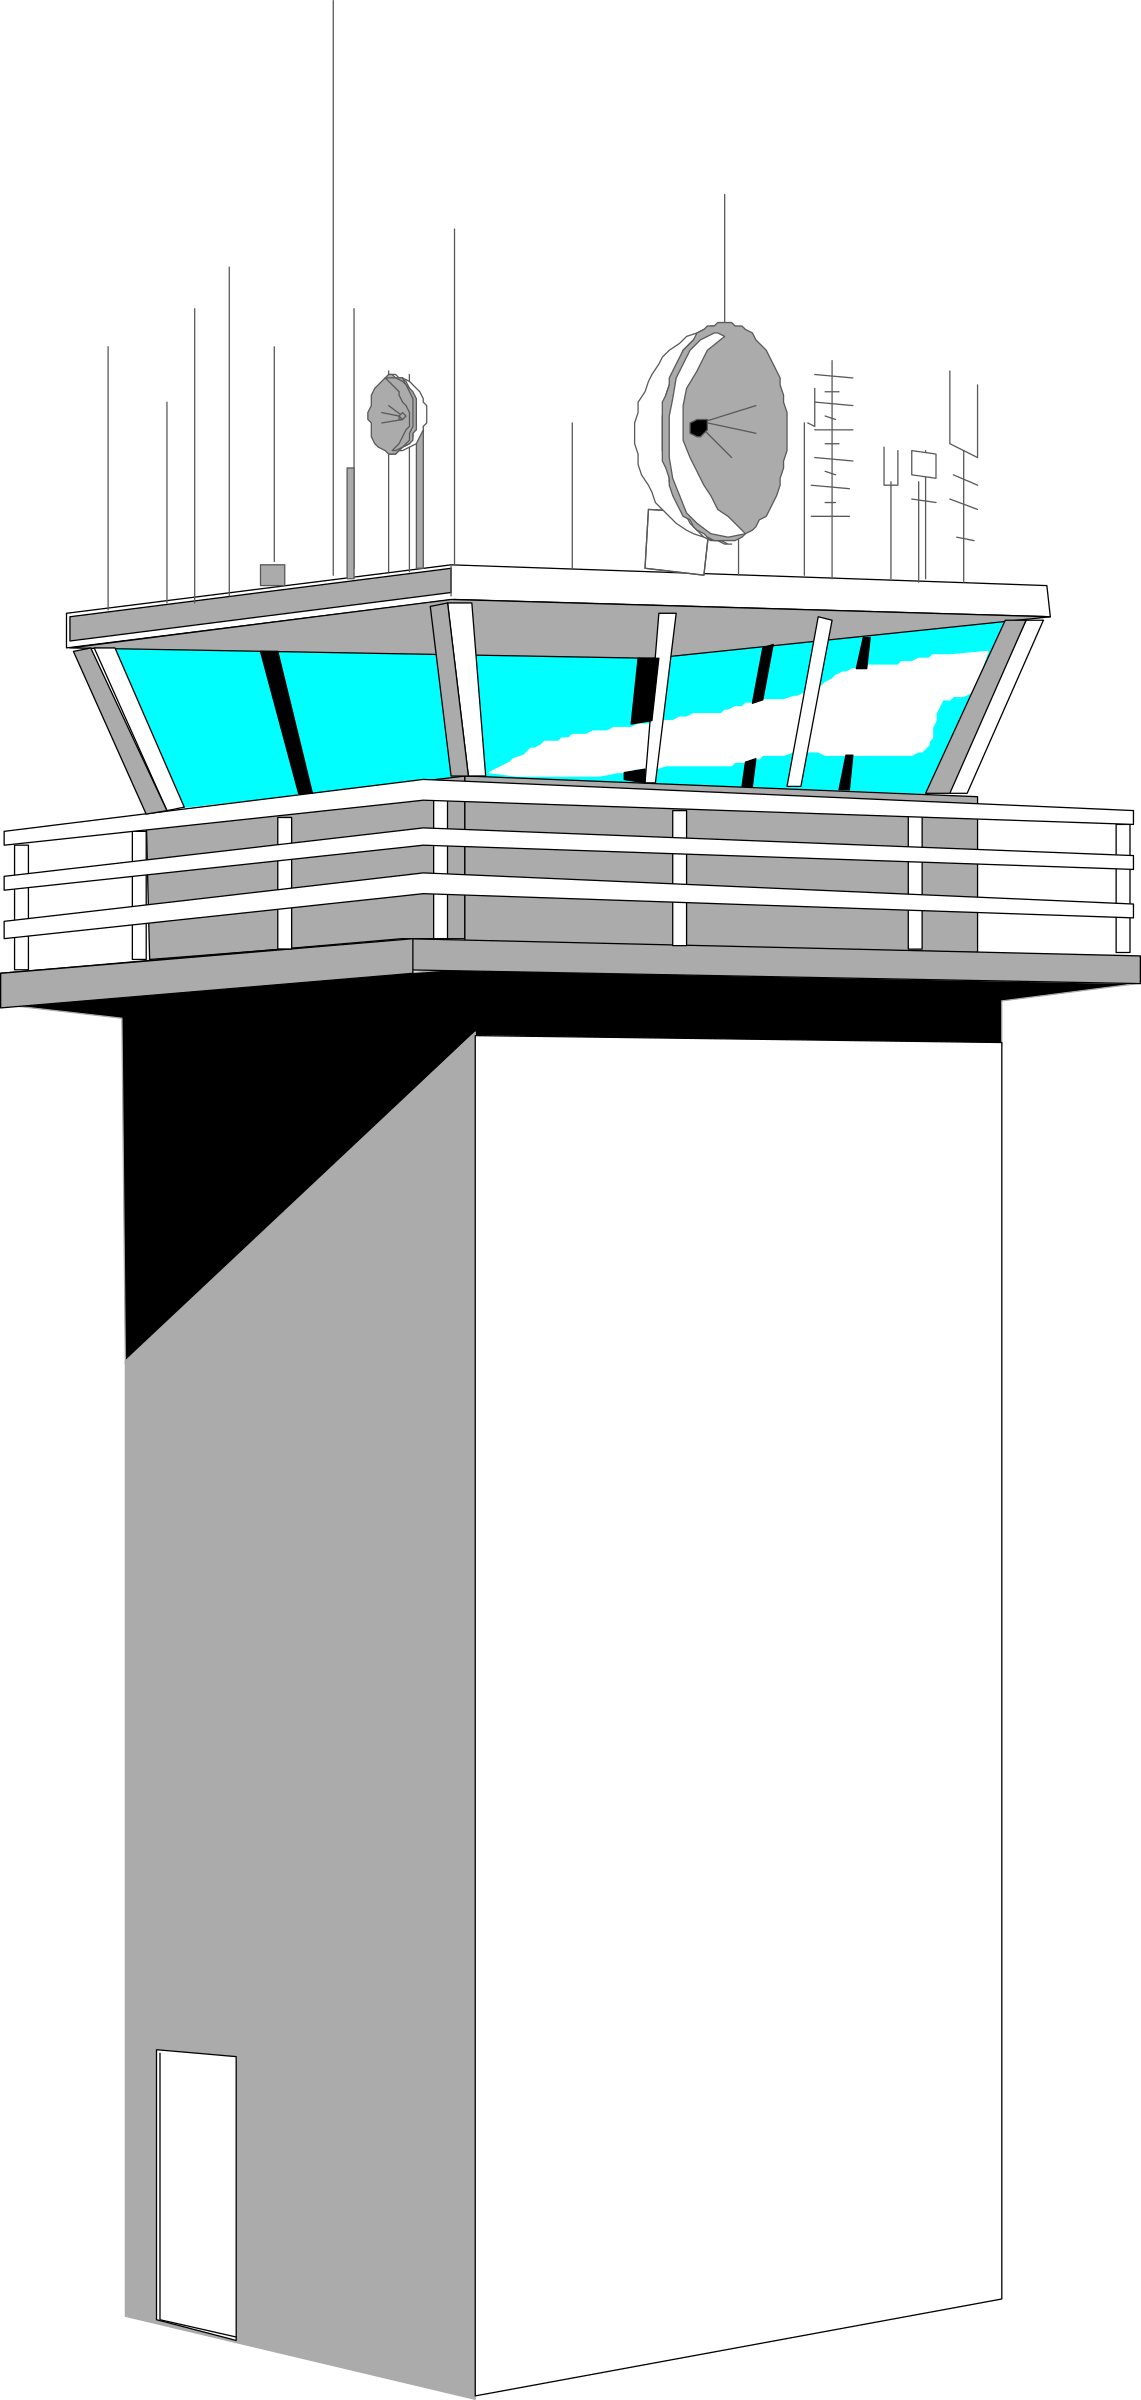 Airport vector control tower. Clipart big image png